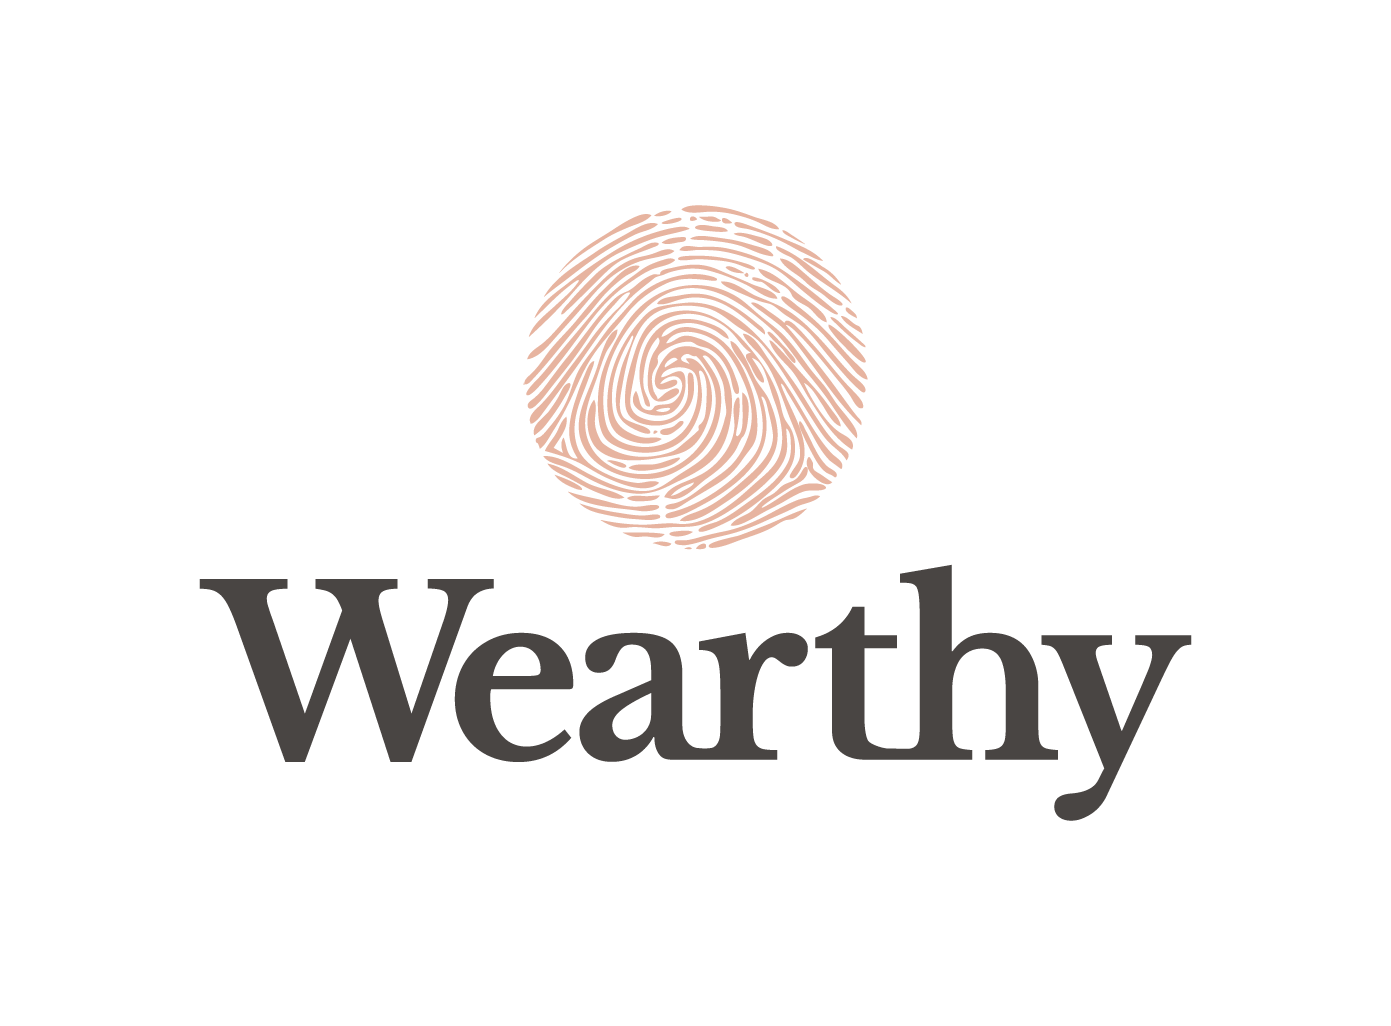 Wearthy | The playful beginnings of human flourishing.